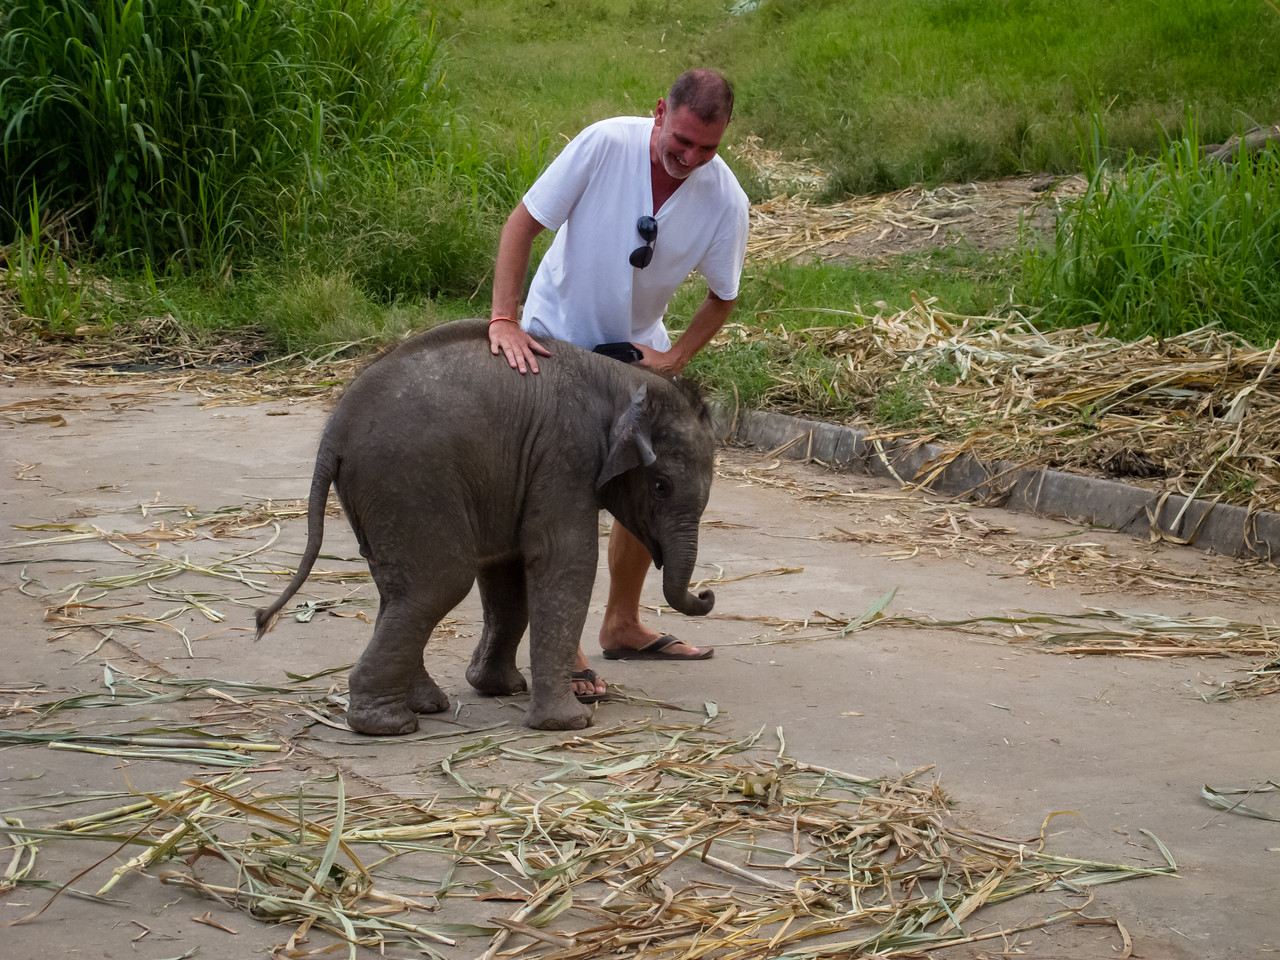 The Baby Thai Elephant Really Was Playing Like a Huge Puppy